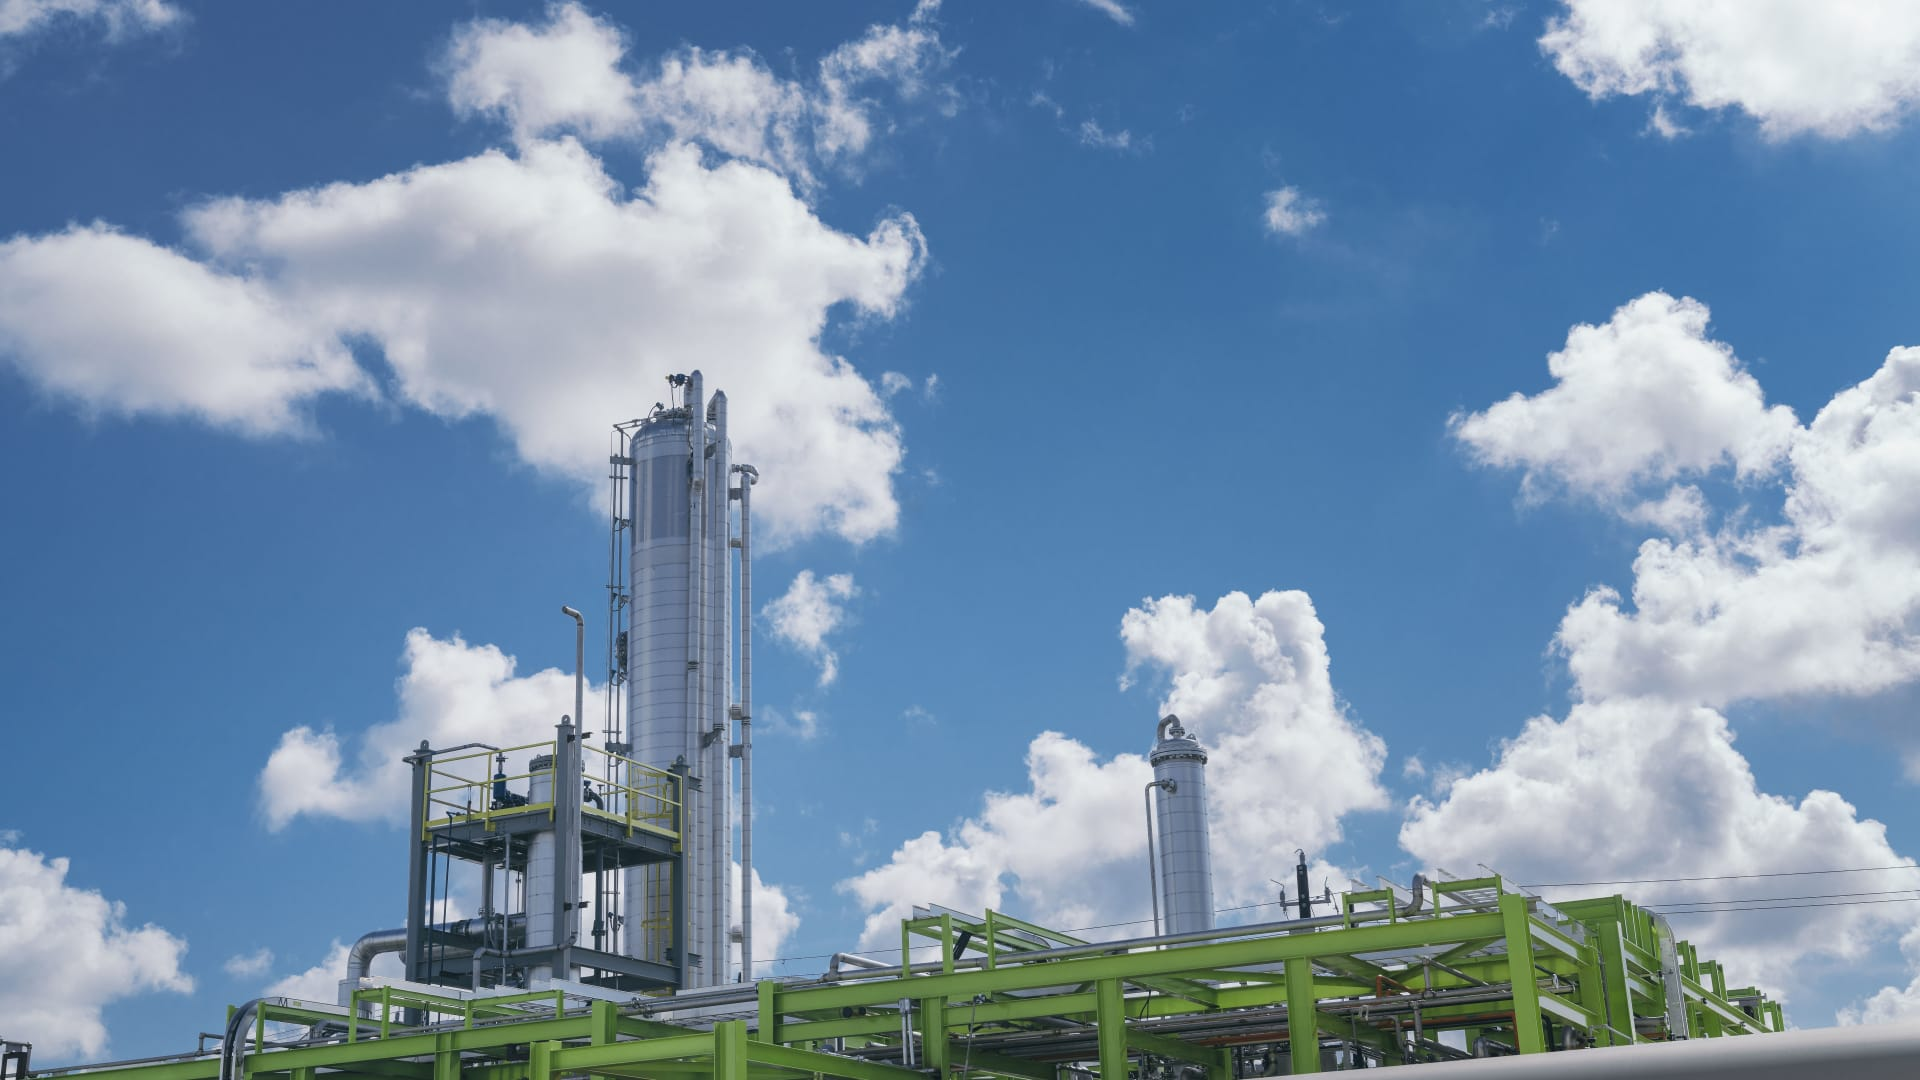 Solugen established its first sustainable chemicals factory in Stafford, Texas. The company took over a property where a petroleum wax distillery exploded in 2005.